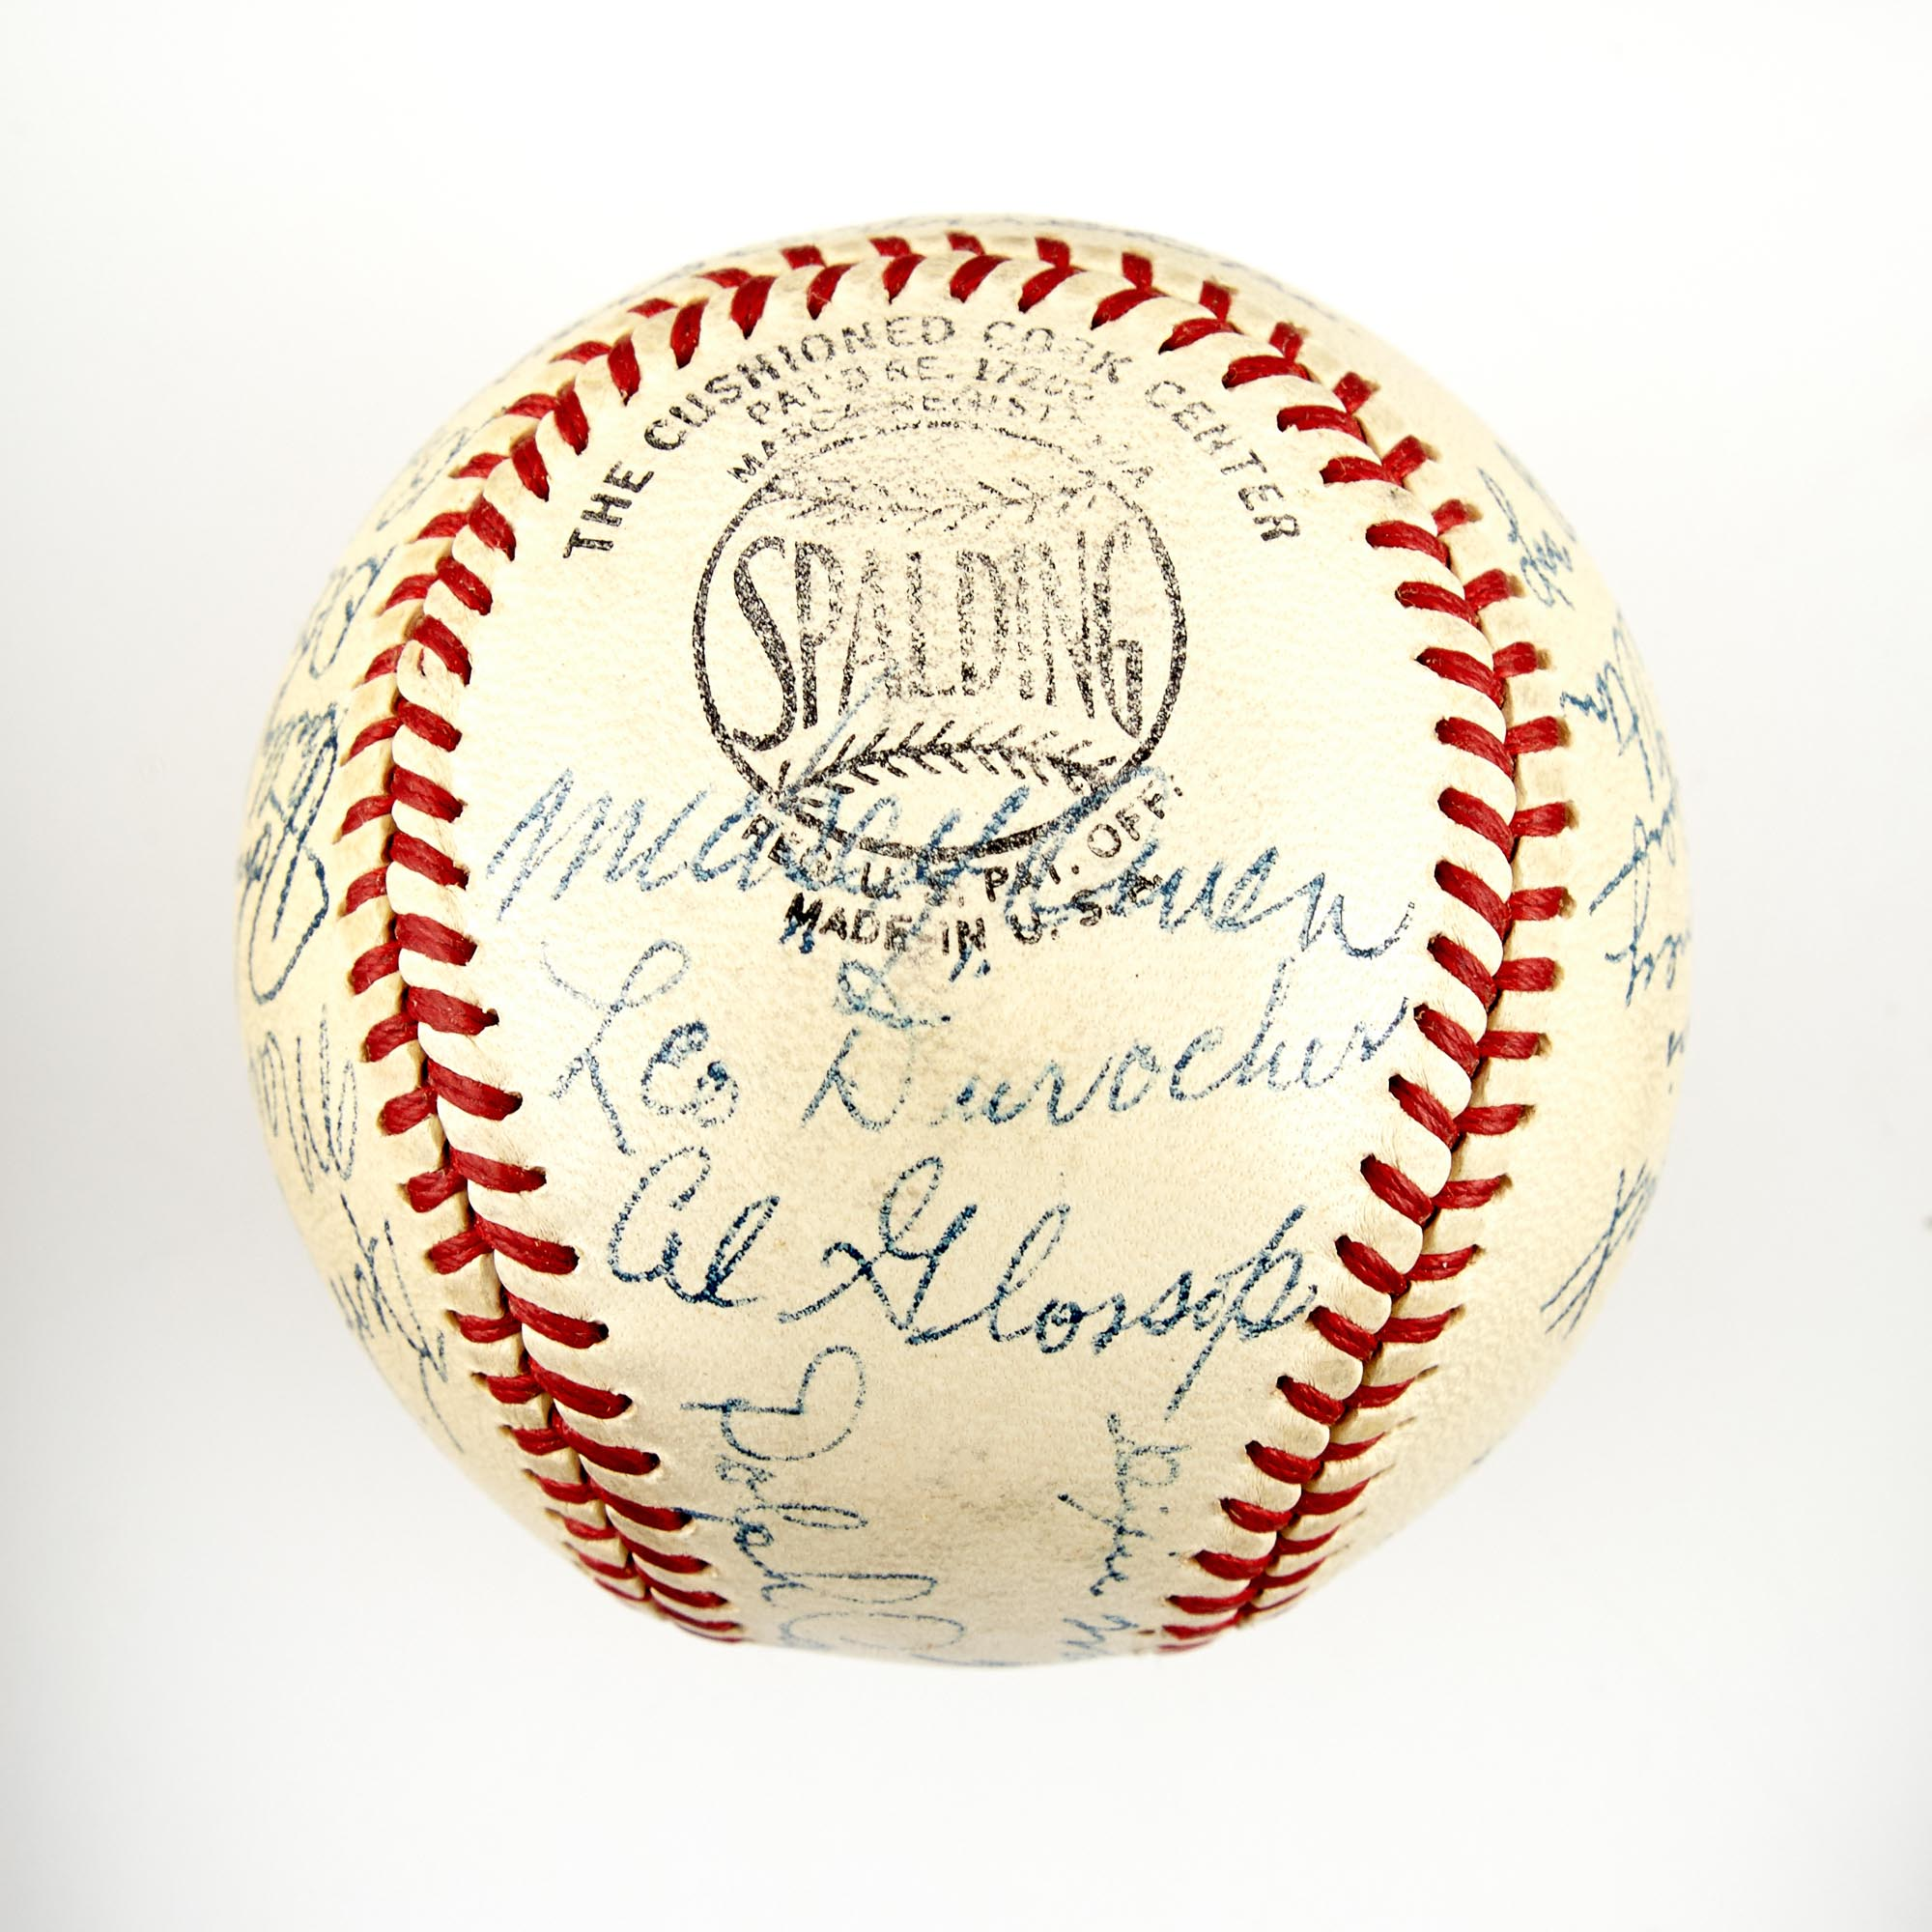 Lot image - [BASEBALL]  Brooklyn Dodgers team signed baseball, circa 1943.